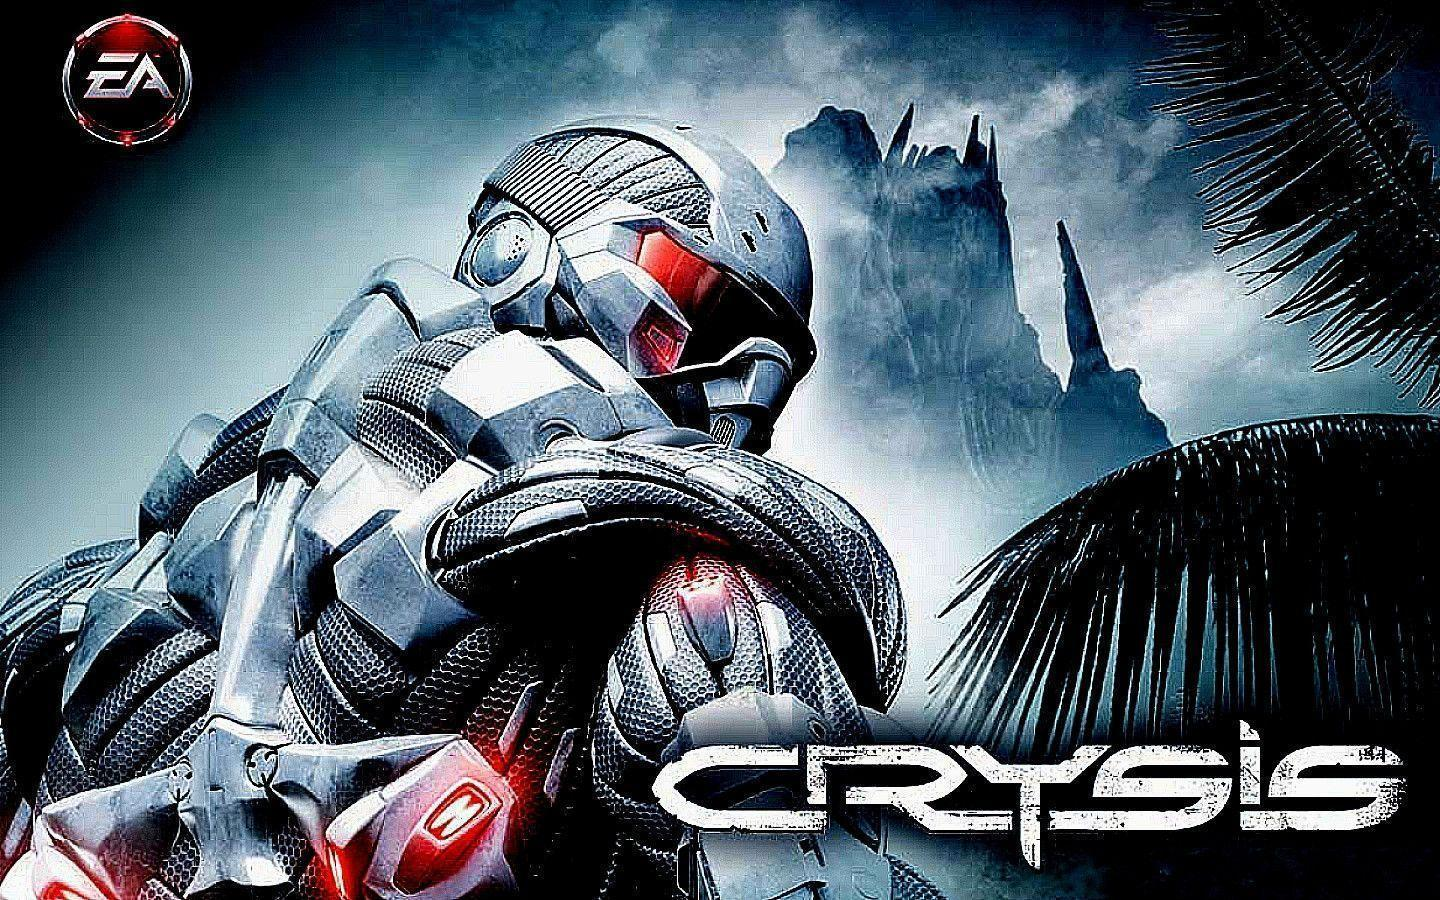 crysis 4 wallpaper hd-#15